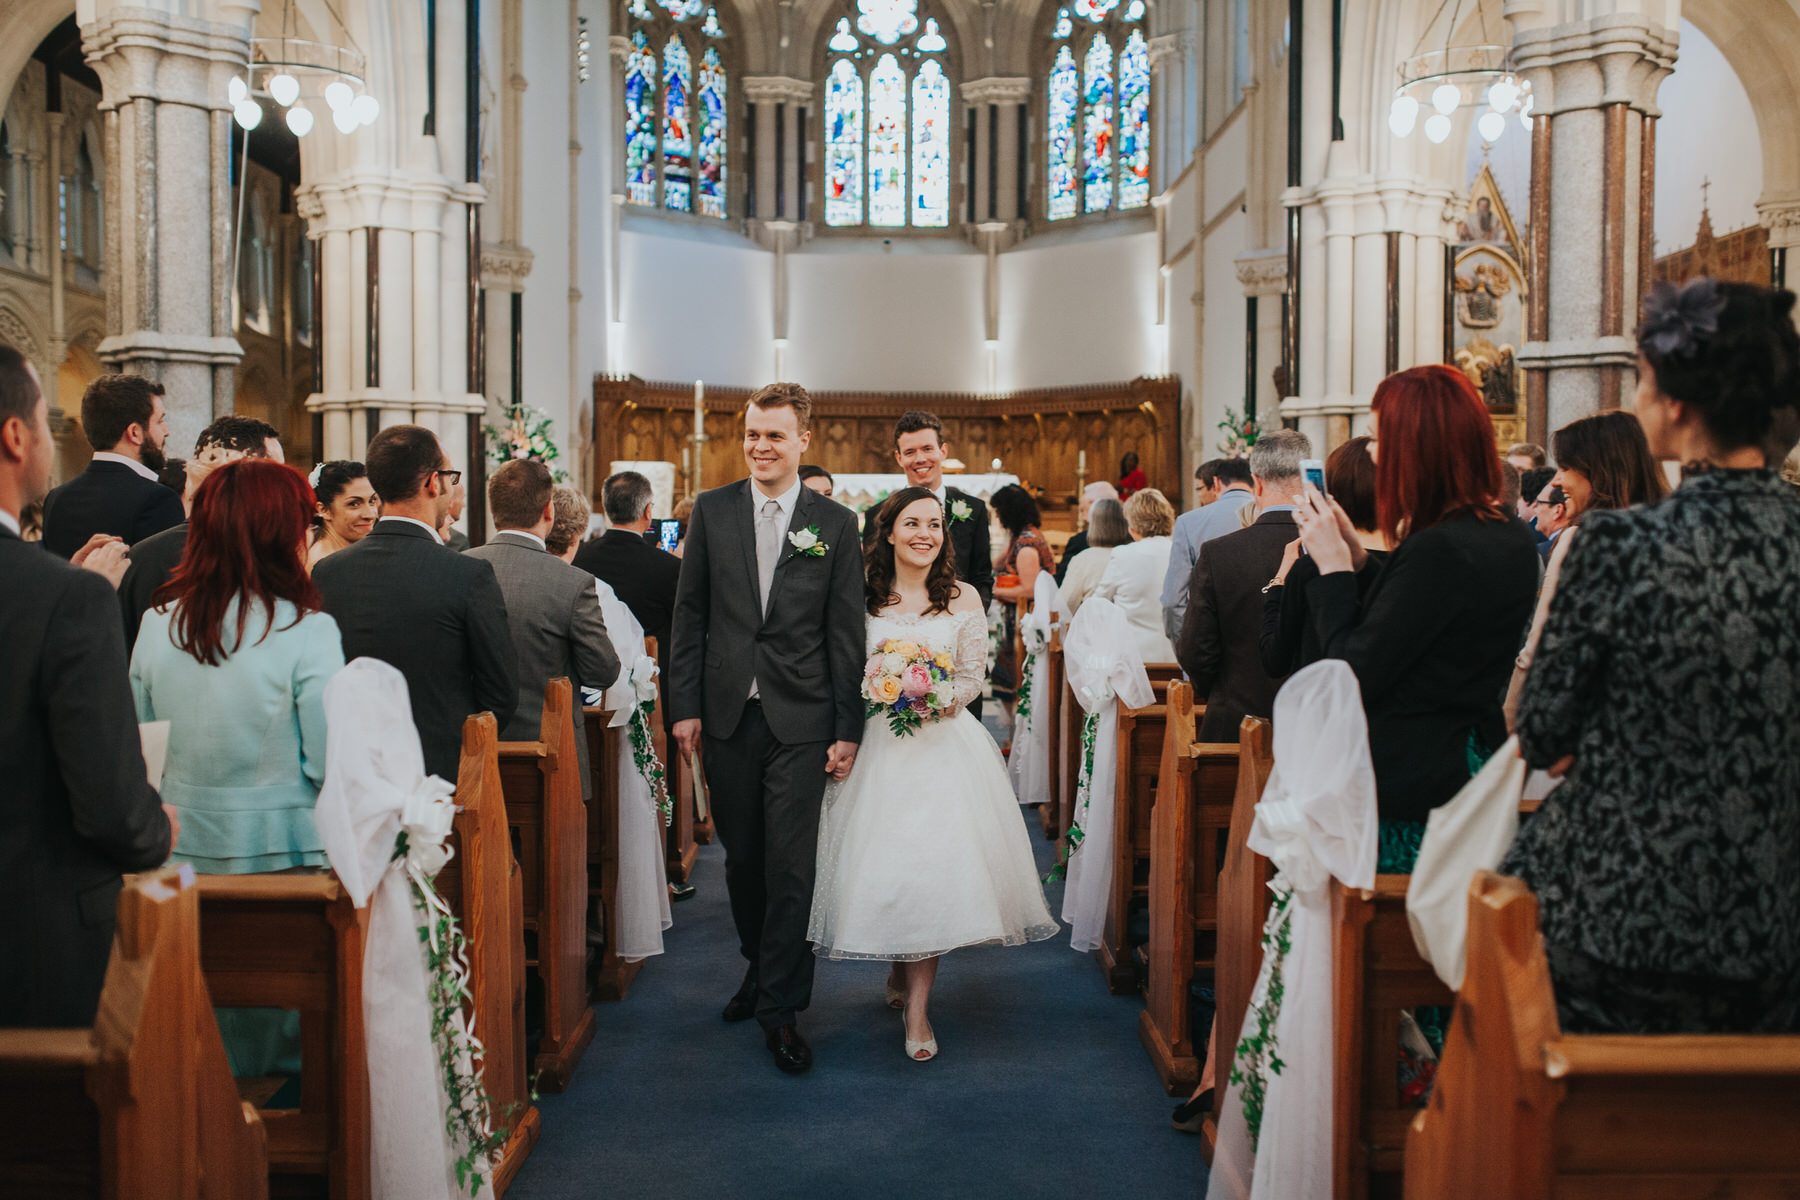 71 bride groom walking down aisle Fulham Catholic Church wedding.jpg